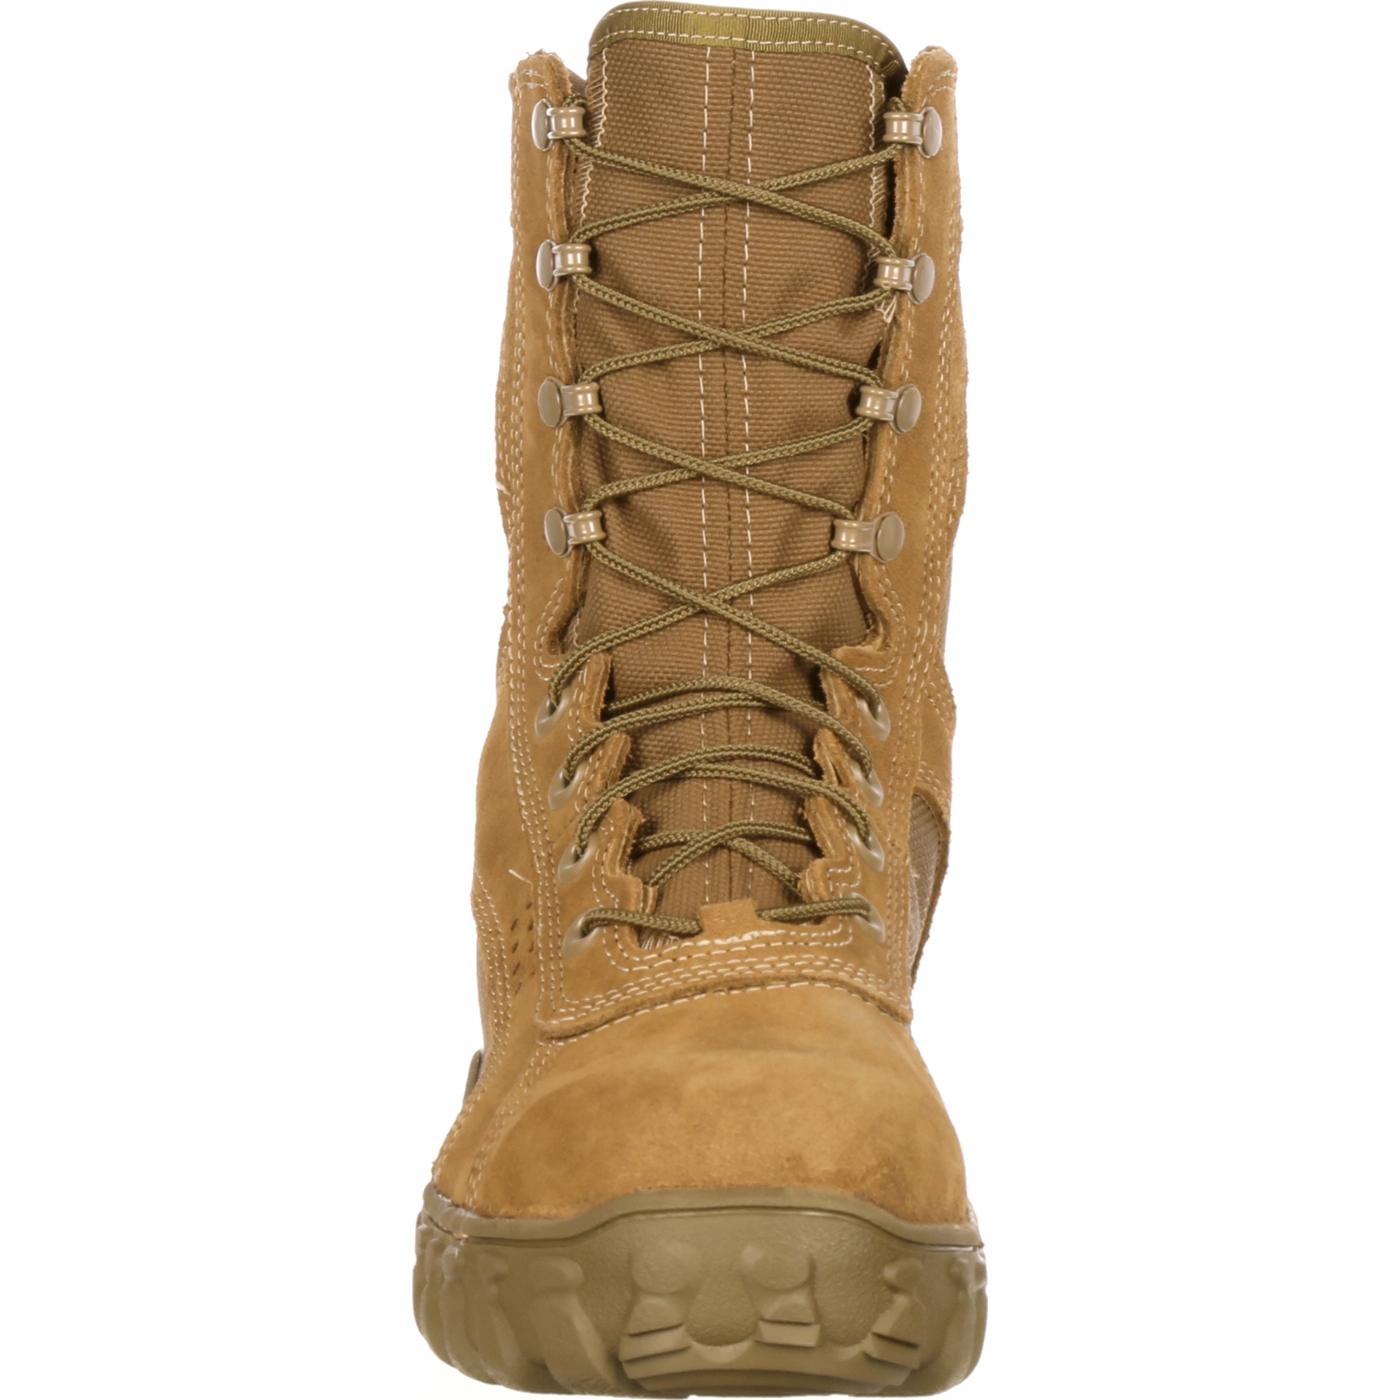 Rocky S2V Steel Toe Military Boot - Work Boot